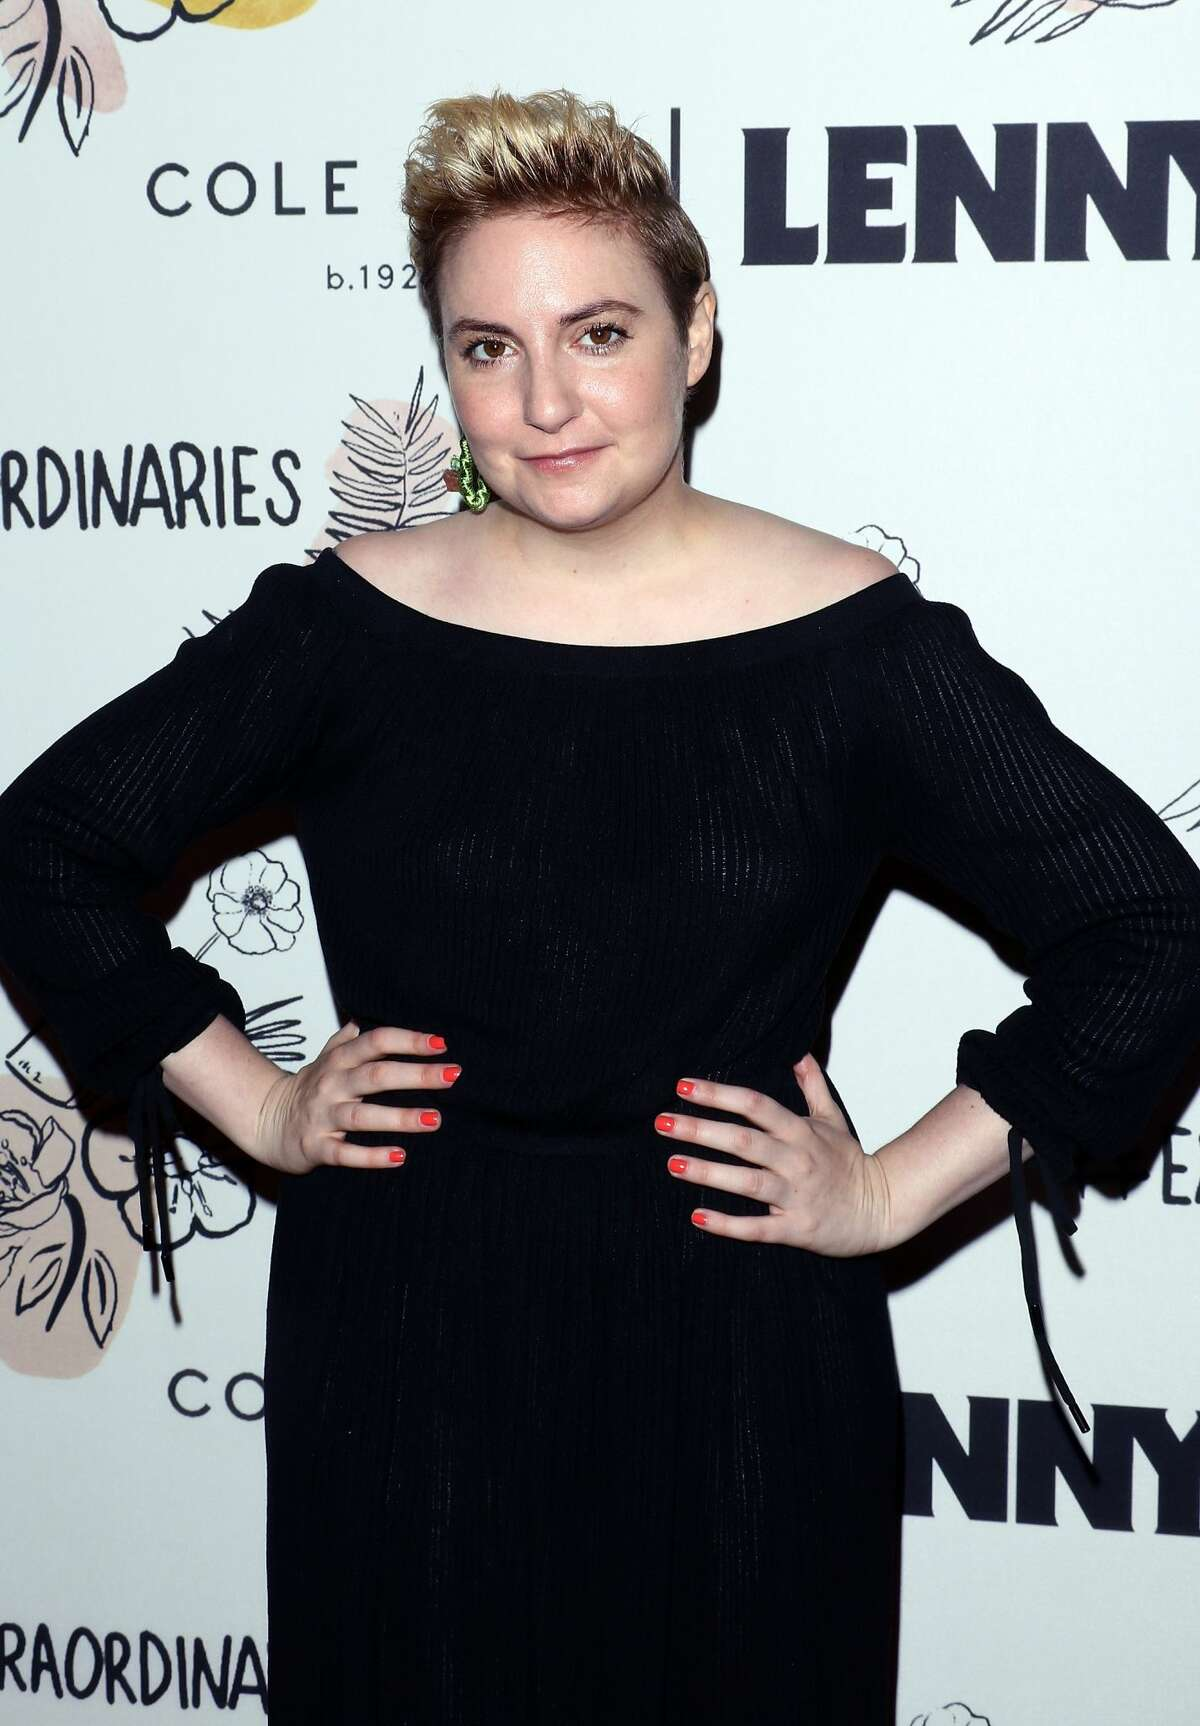 Actress Lena Dunham attends The 2nd Anniversary Party for Lenny, in partnership with Cole Haan at The Jane Hotel on September 15, 2017 in New York City.